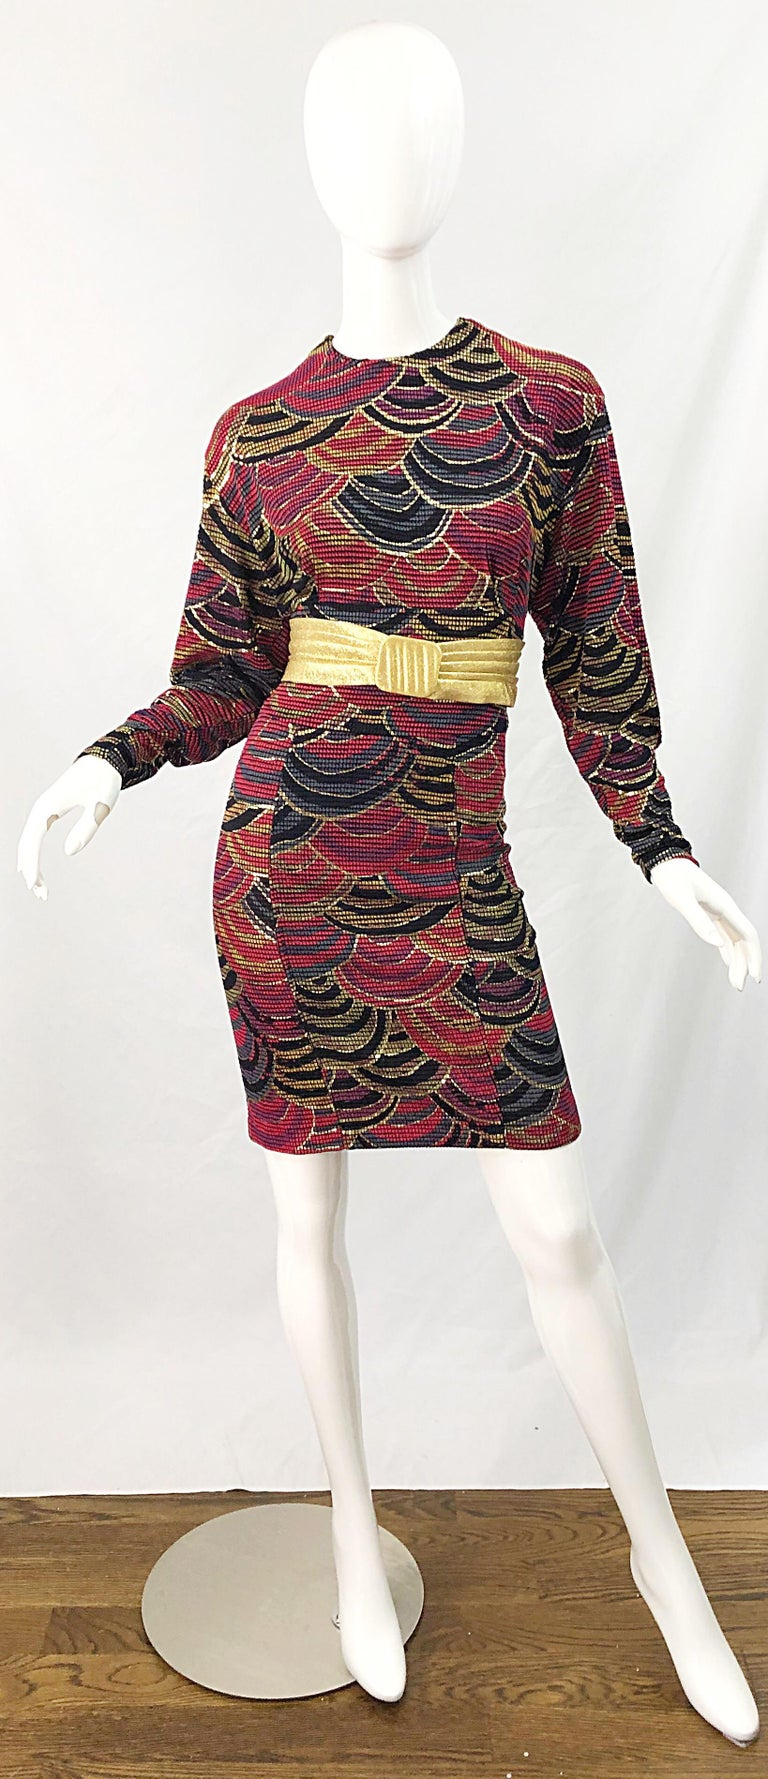 Women's 1980s Hand Painted Reversible Red + Gold + Green Vintage 80s Avant Garde Dress For Sale